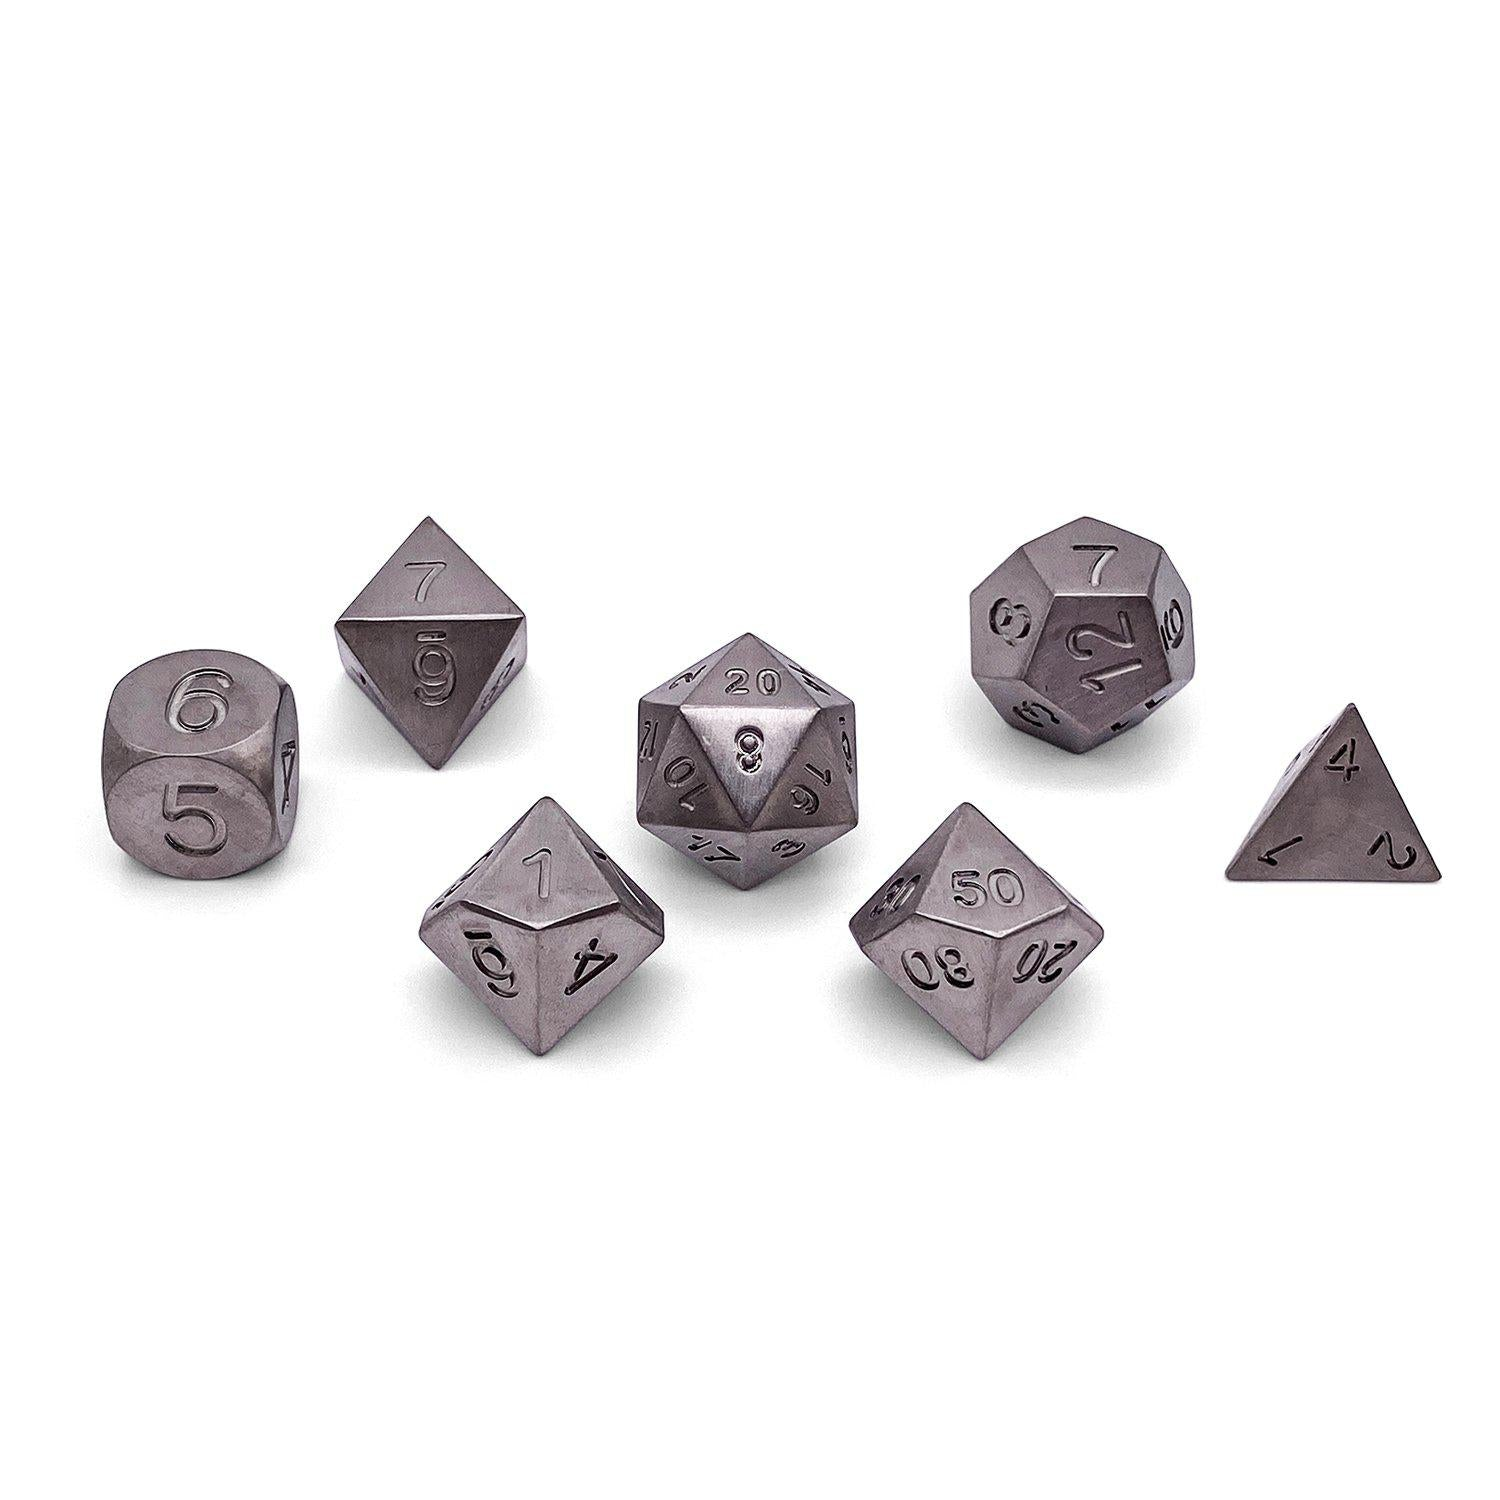 Set of 7 Titanium RPG Dice by Norse Foundry Polyhedral Dice Set